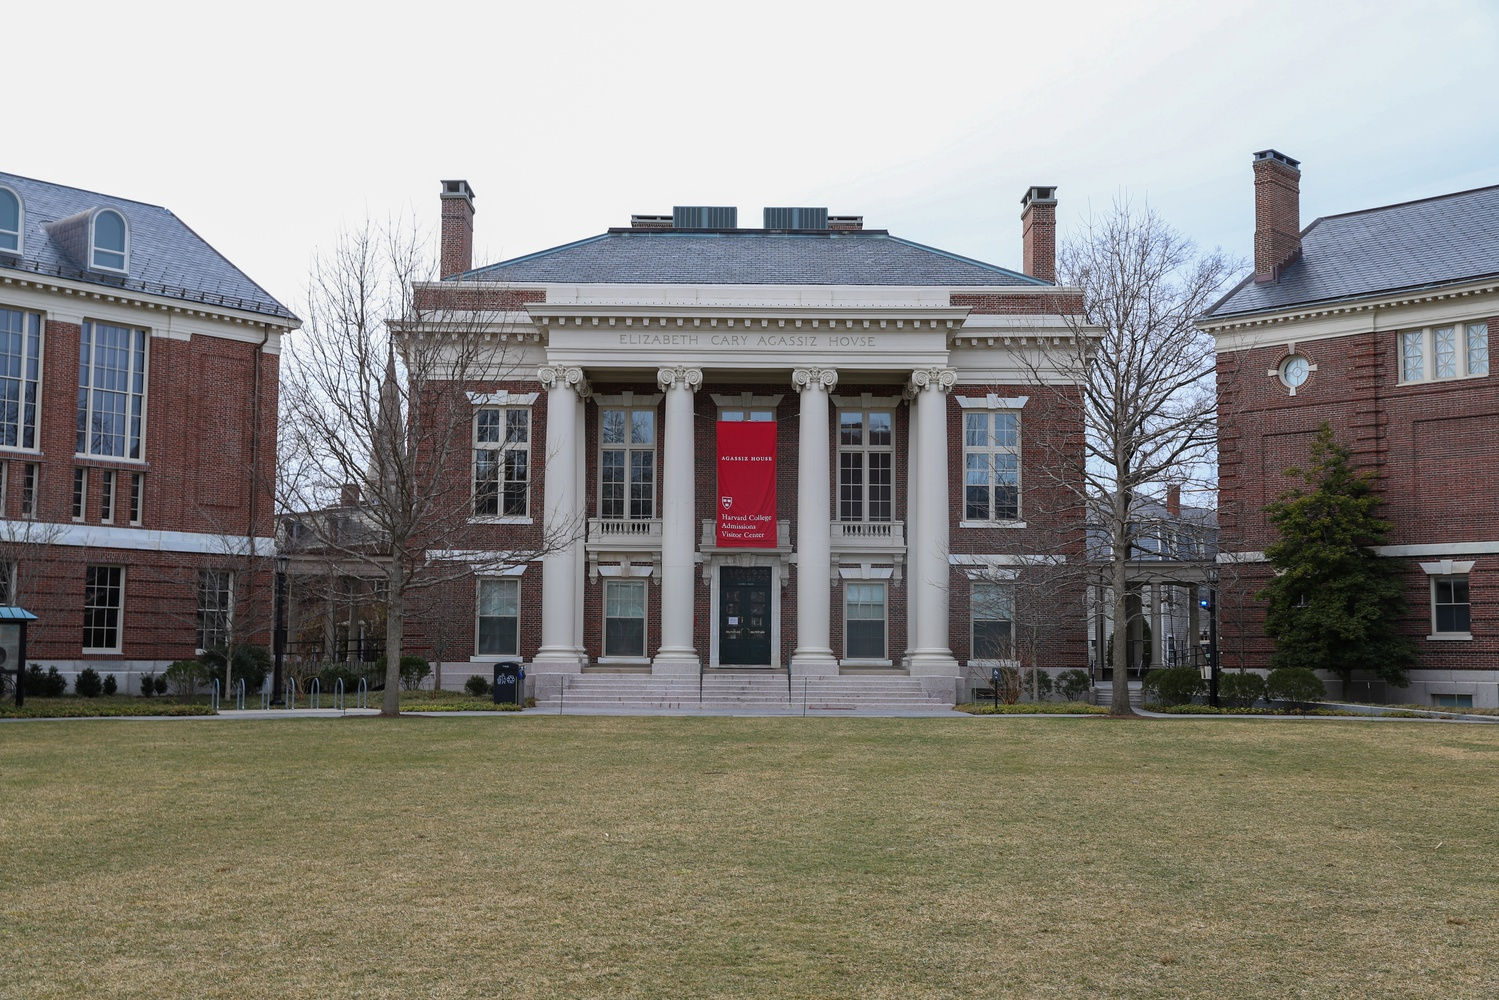 Aggasiz House is located in Radcliffe Yard.